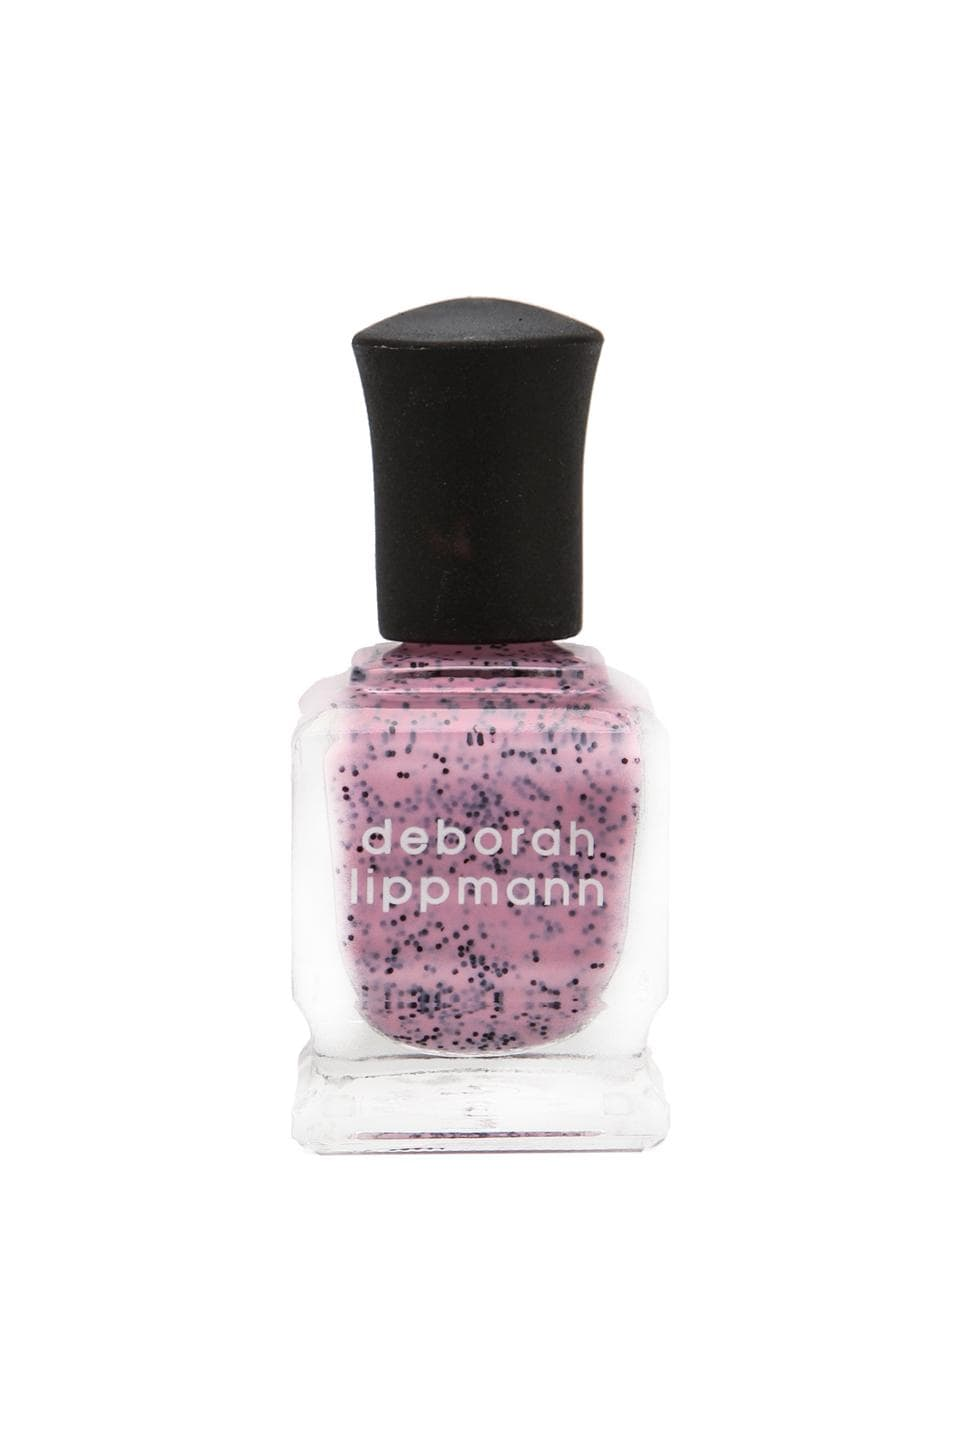 Deborah Lippmann Nail Lacquer in I'm not Edible